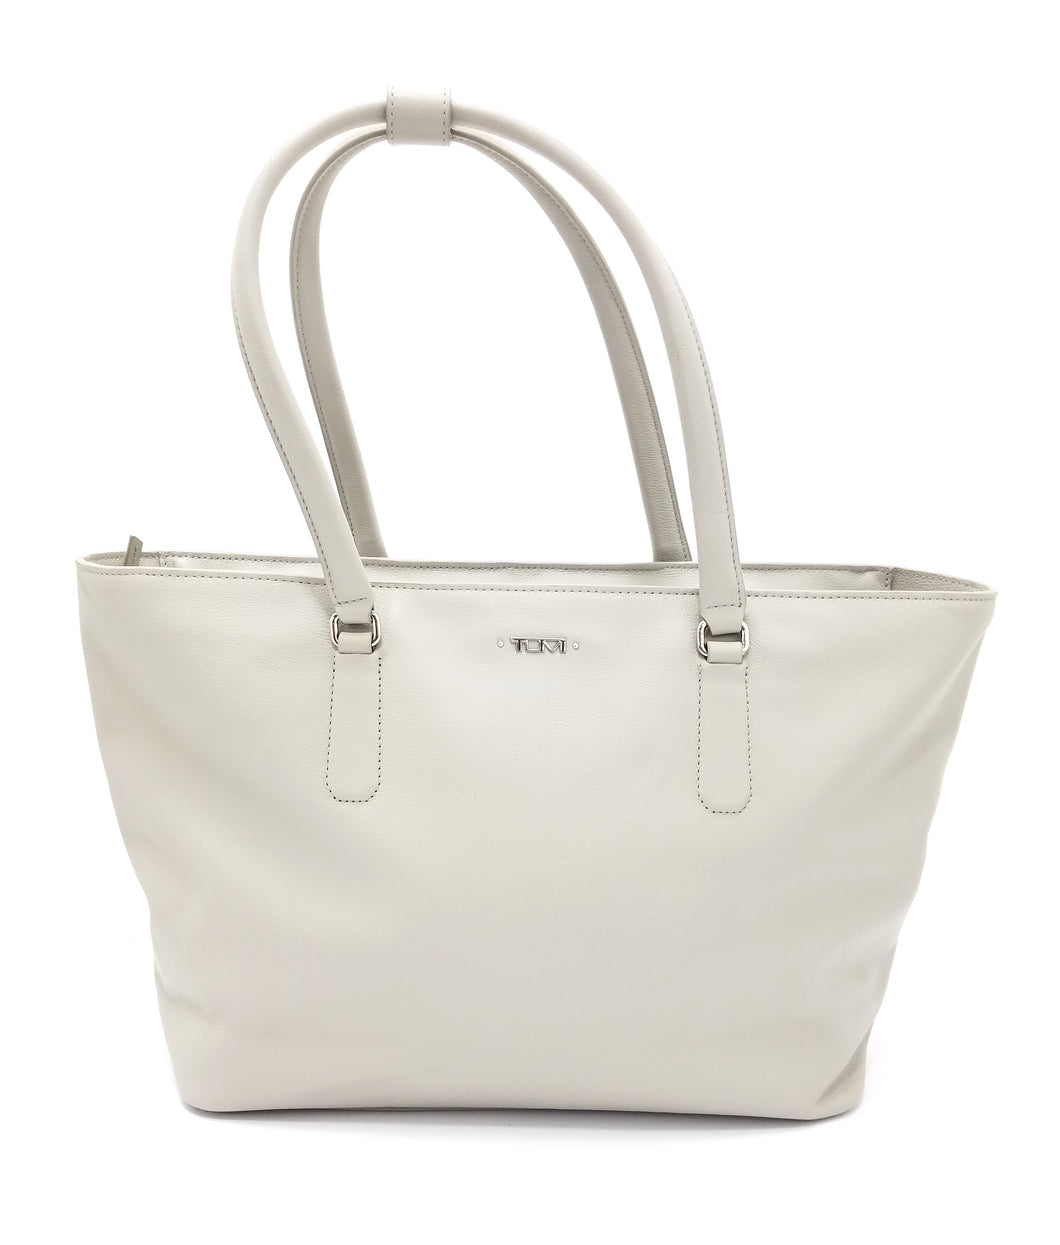 Tumi Sinclair Nell Large Tote Bag